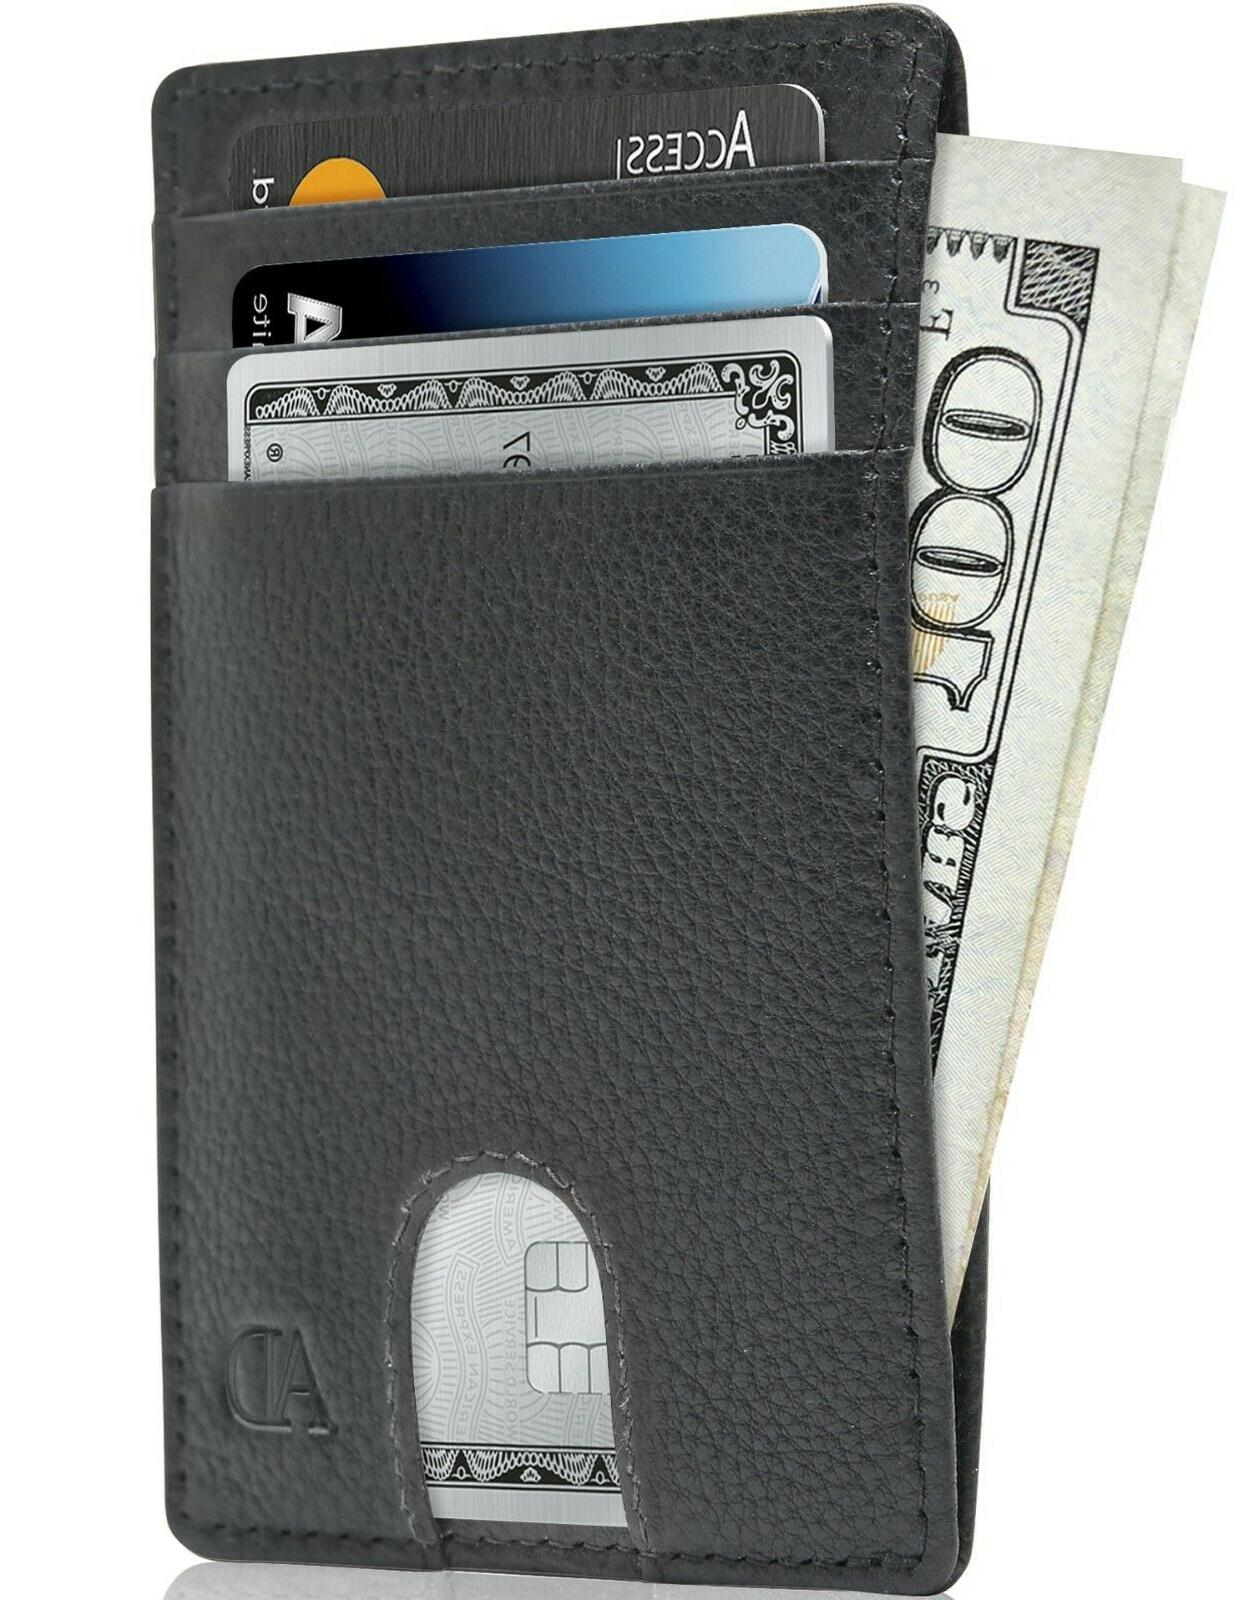 leather slim minimalist front pocket cardholder wallets